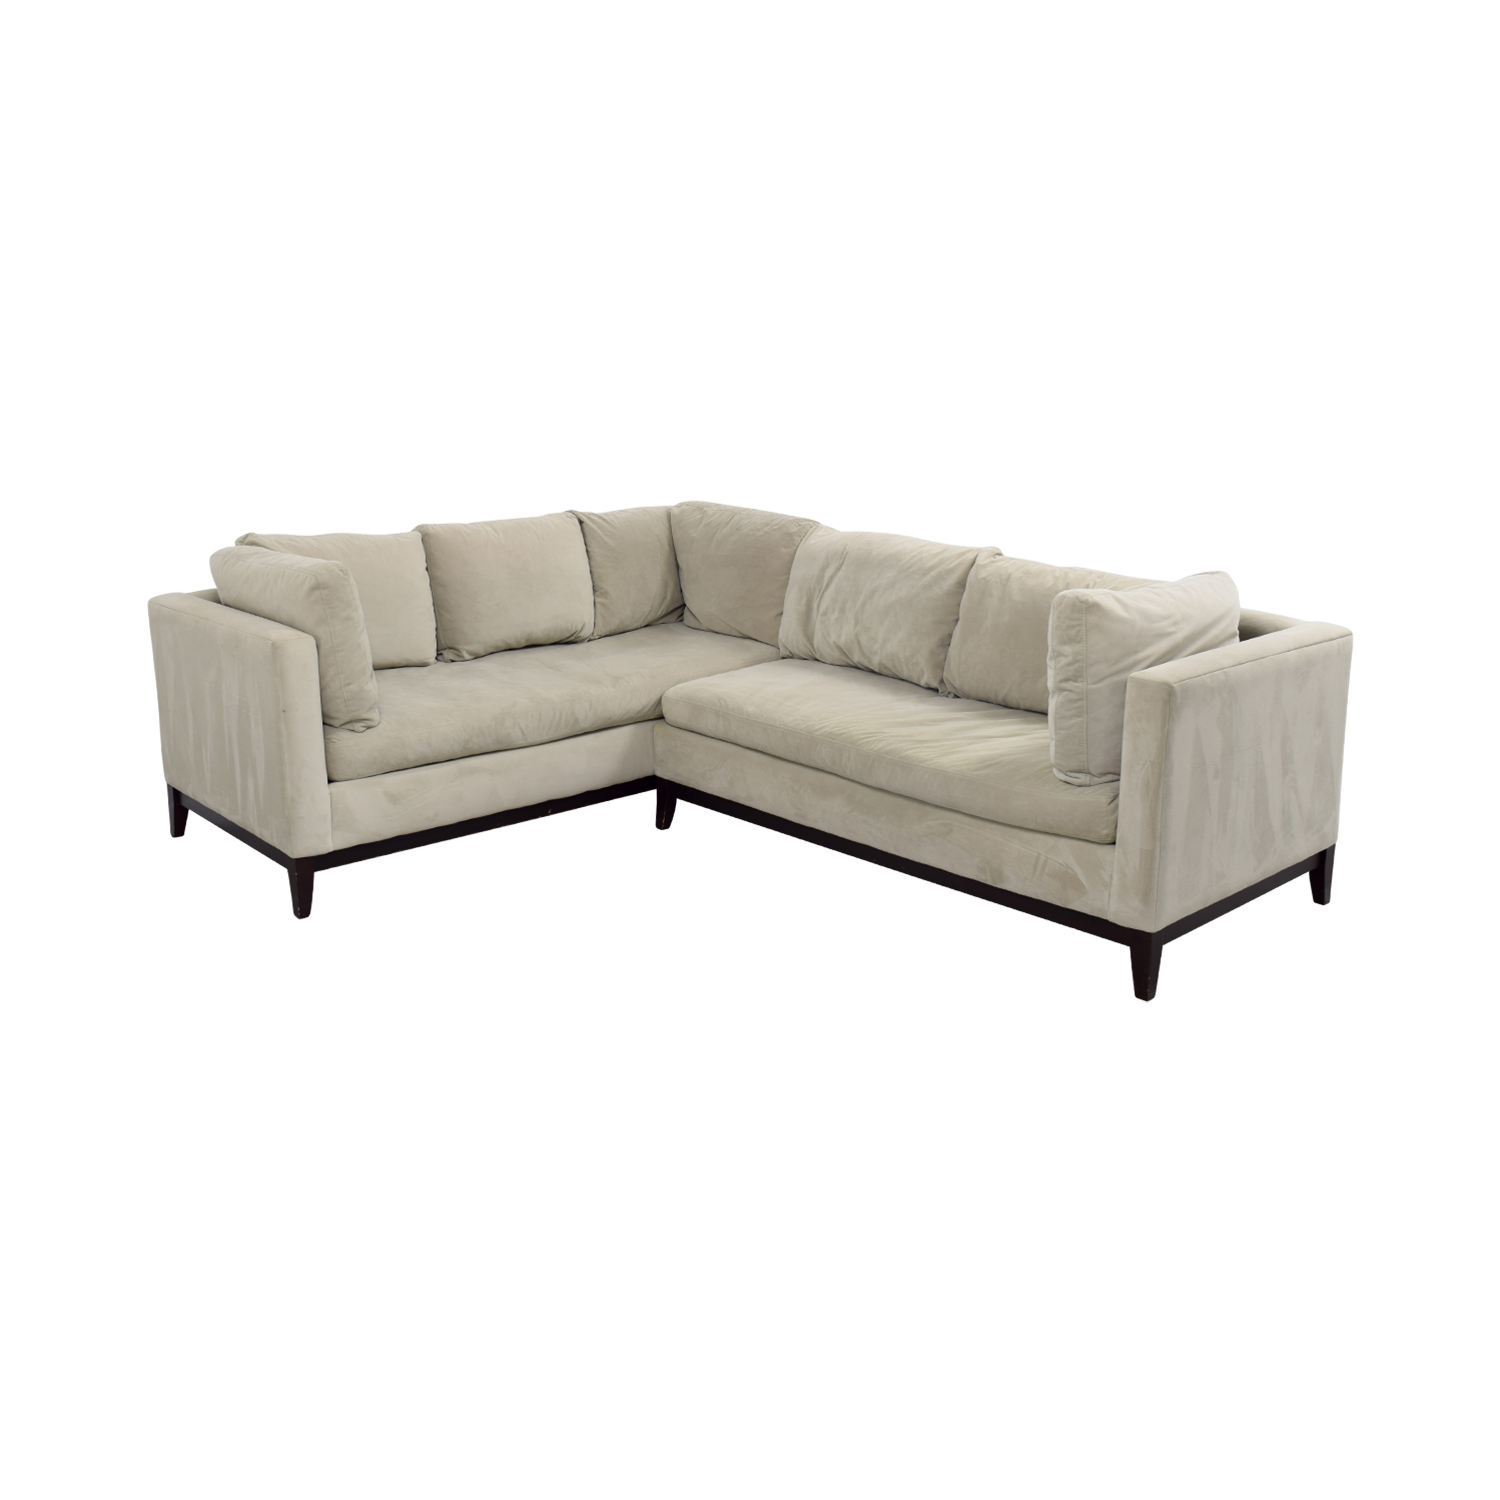 small sectional sofa west elm sofas for sale in houston 81 off beige l shaped